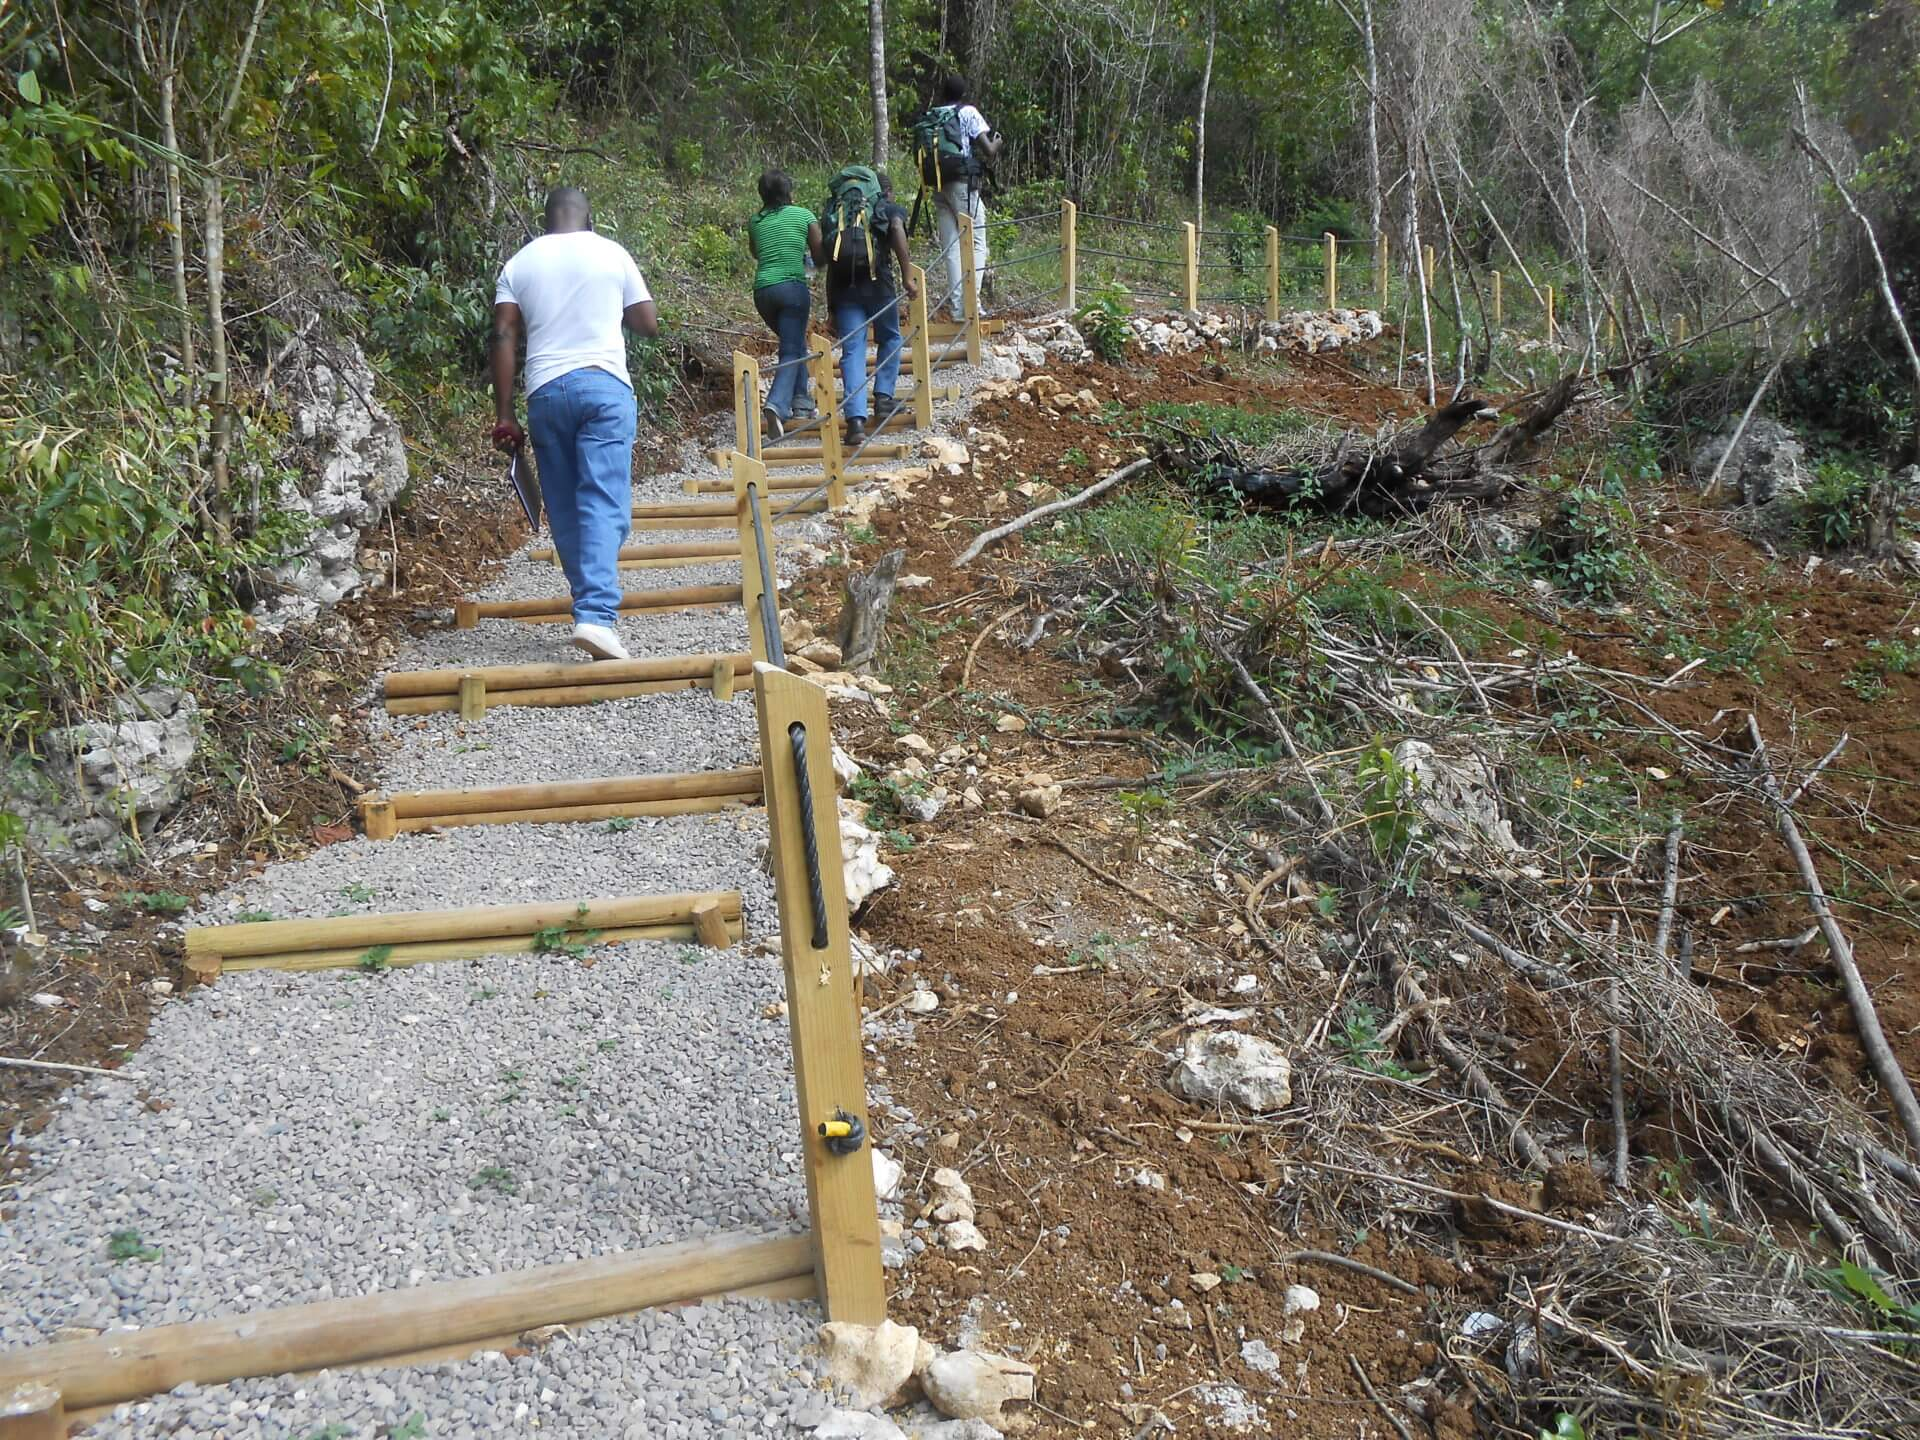 rock-spring-cave-trail-redevelopment4